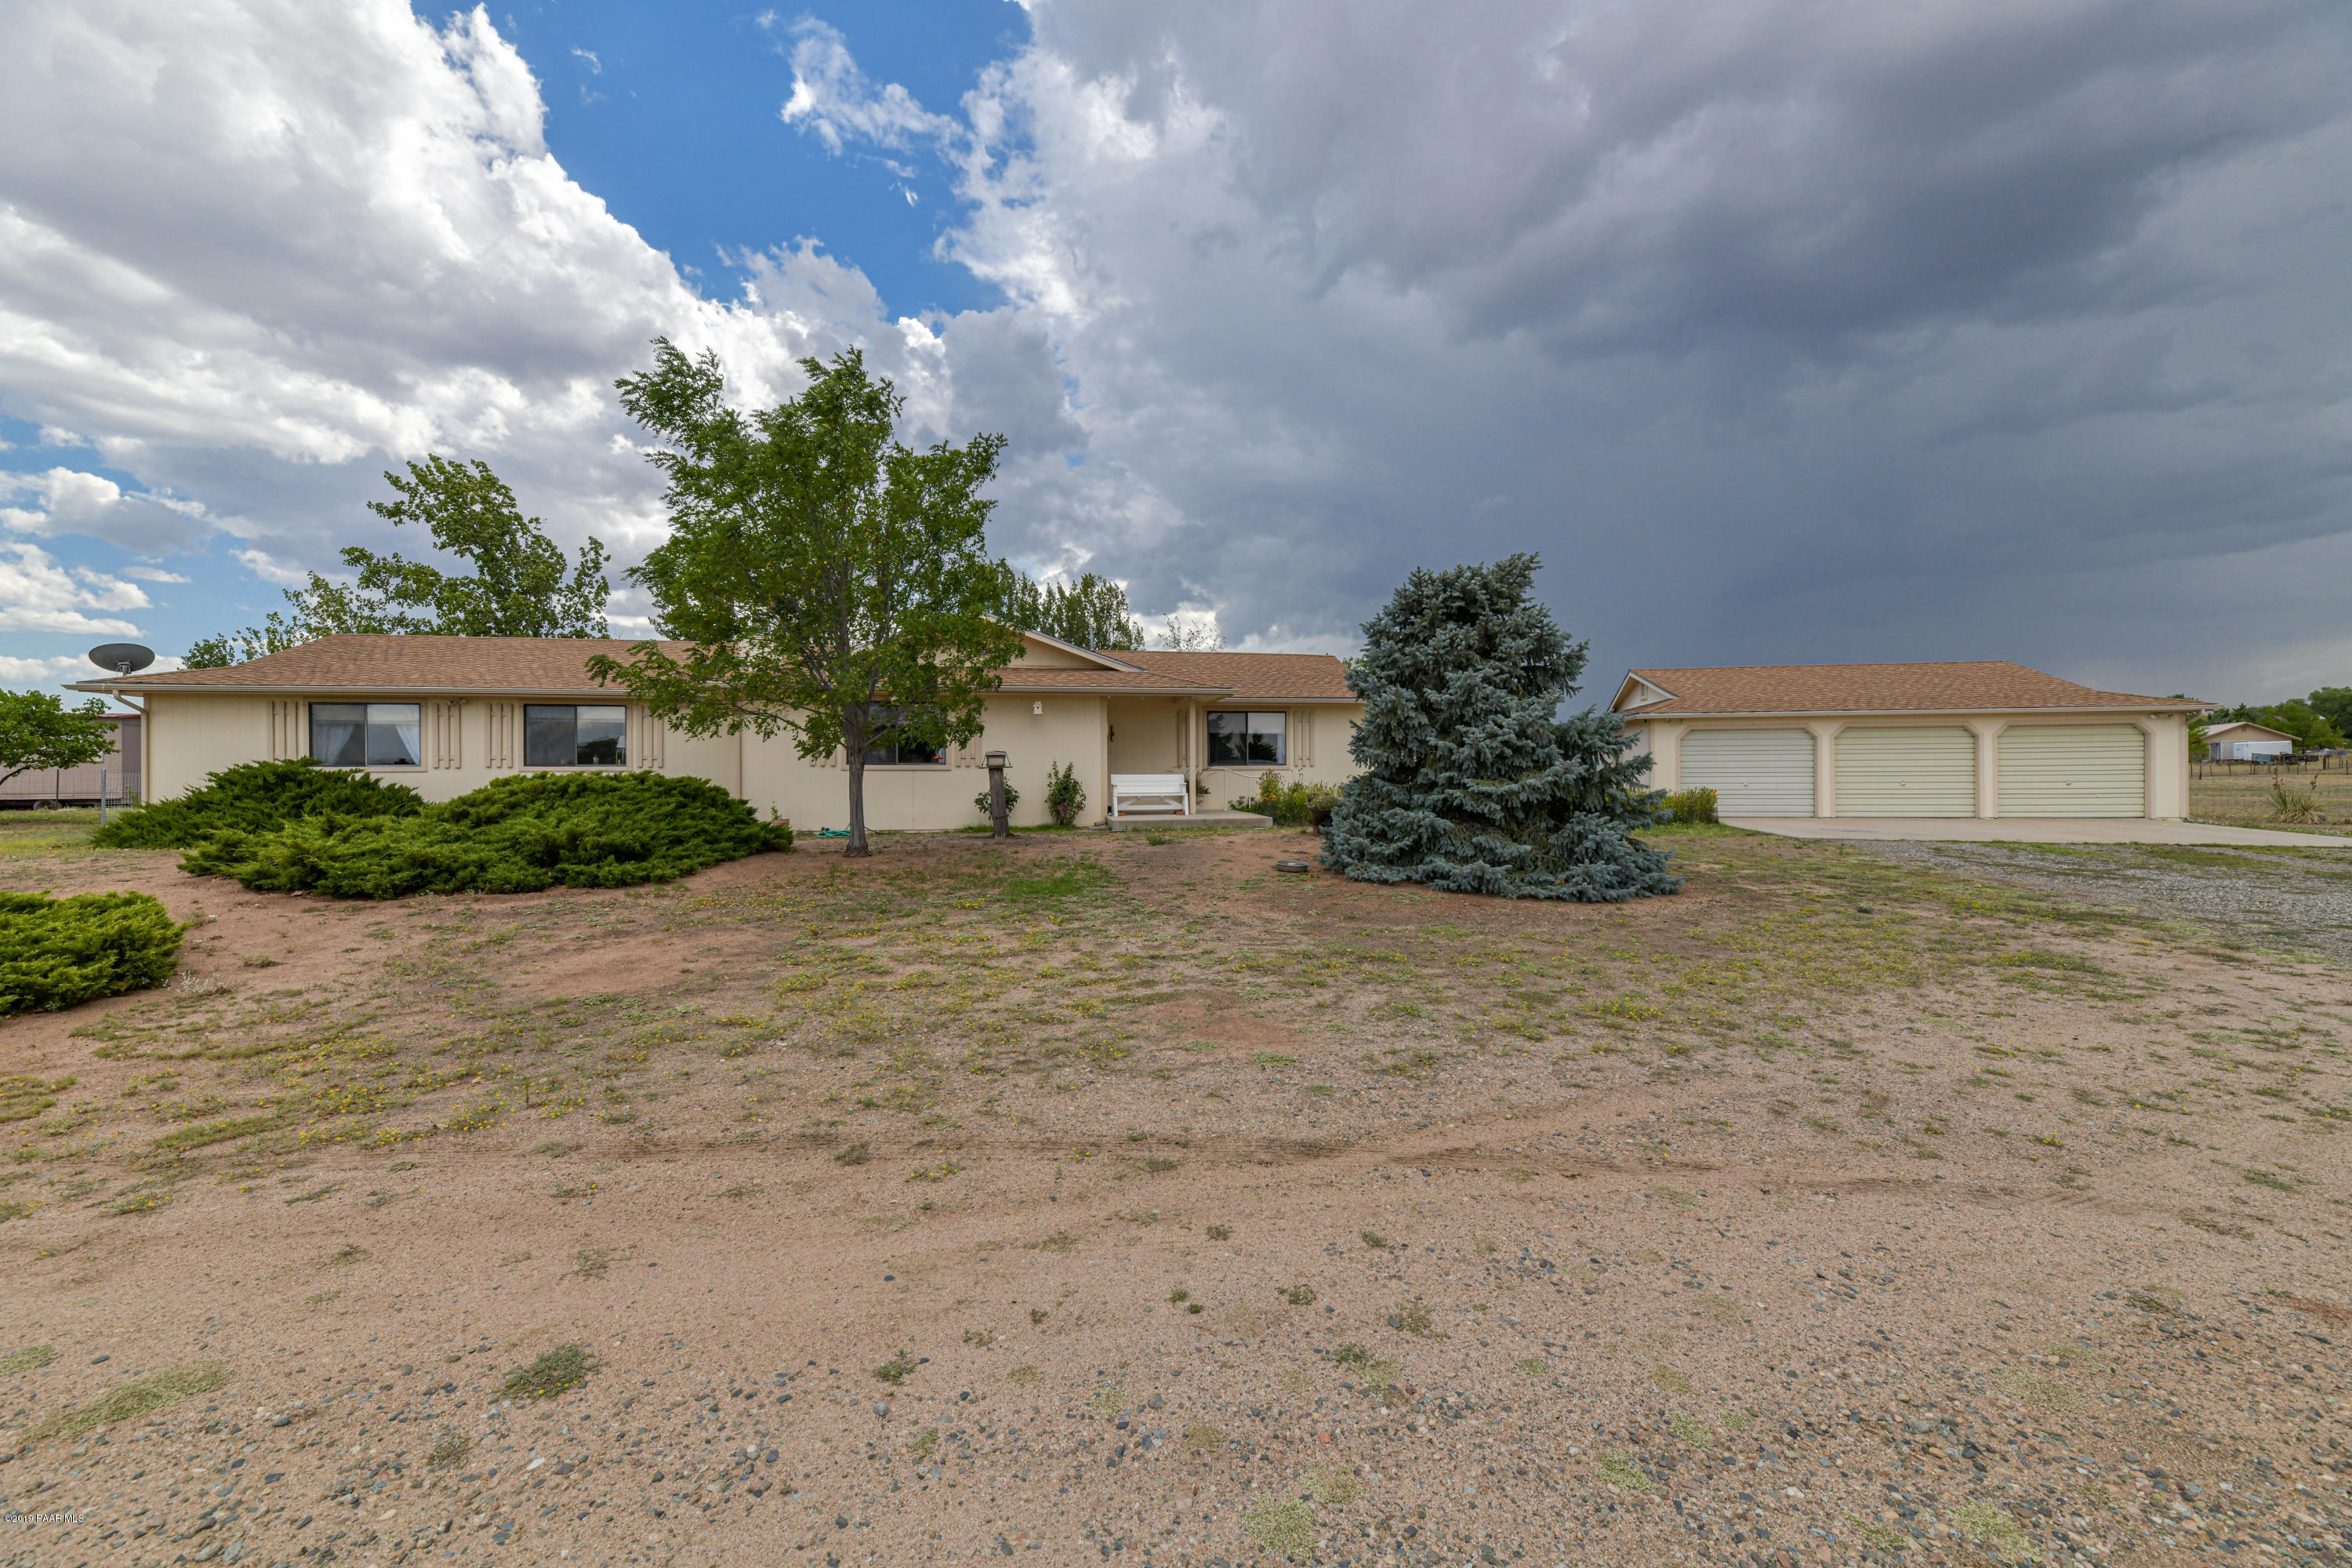 Photo of 1355 Road 2, Chino Valley, AZ 86323